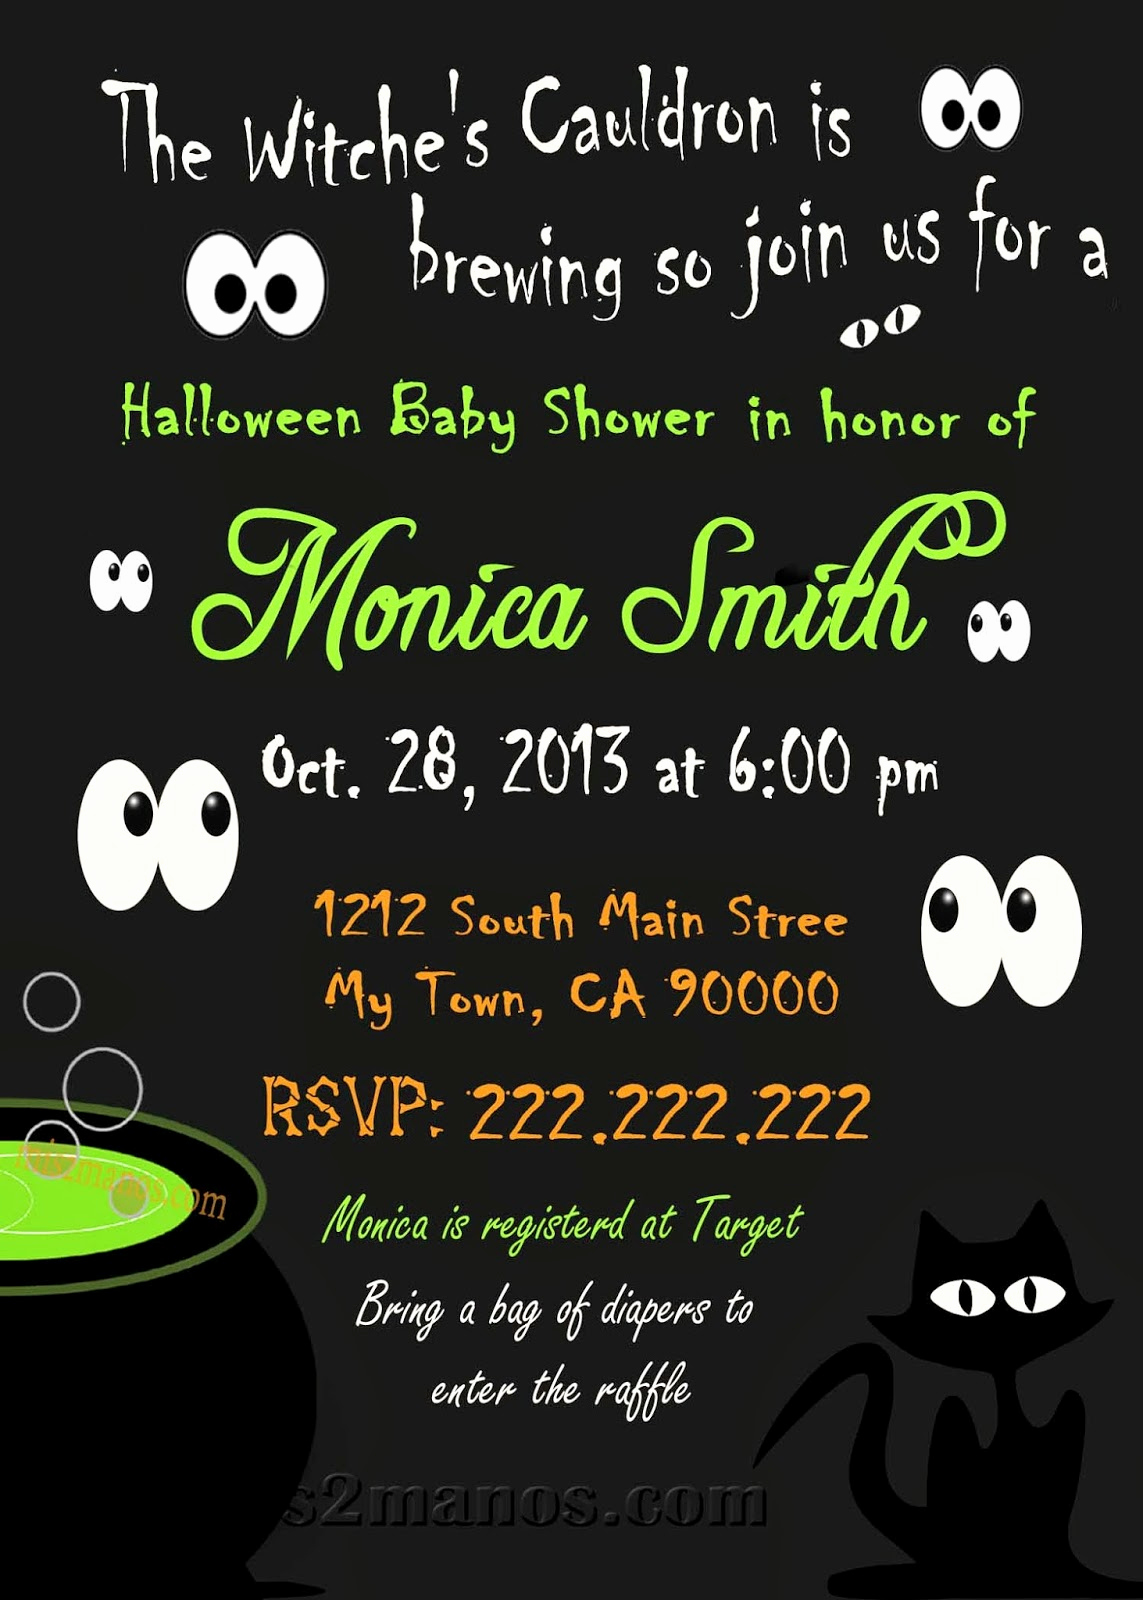 Halloween Baby Shower Invitation Awesome Mis 2 Manos Made by My Hands Halloween Baby Shower